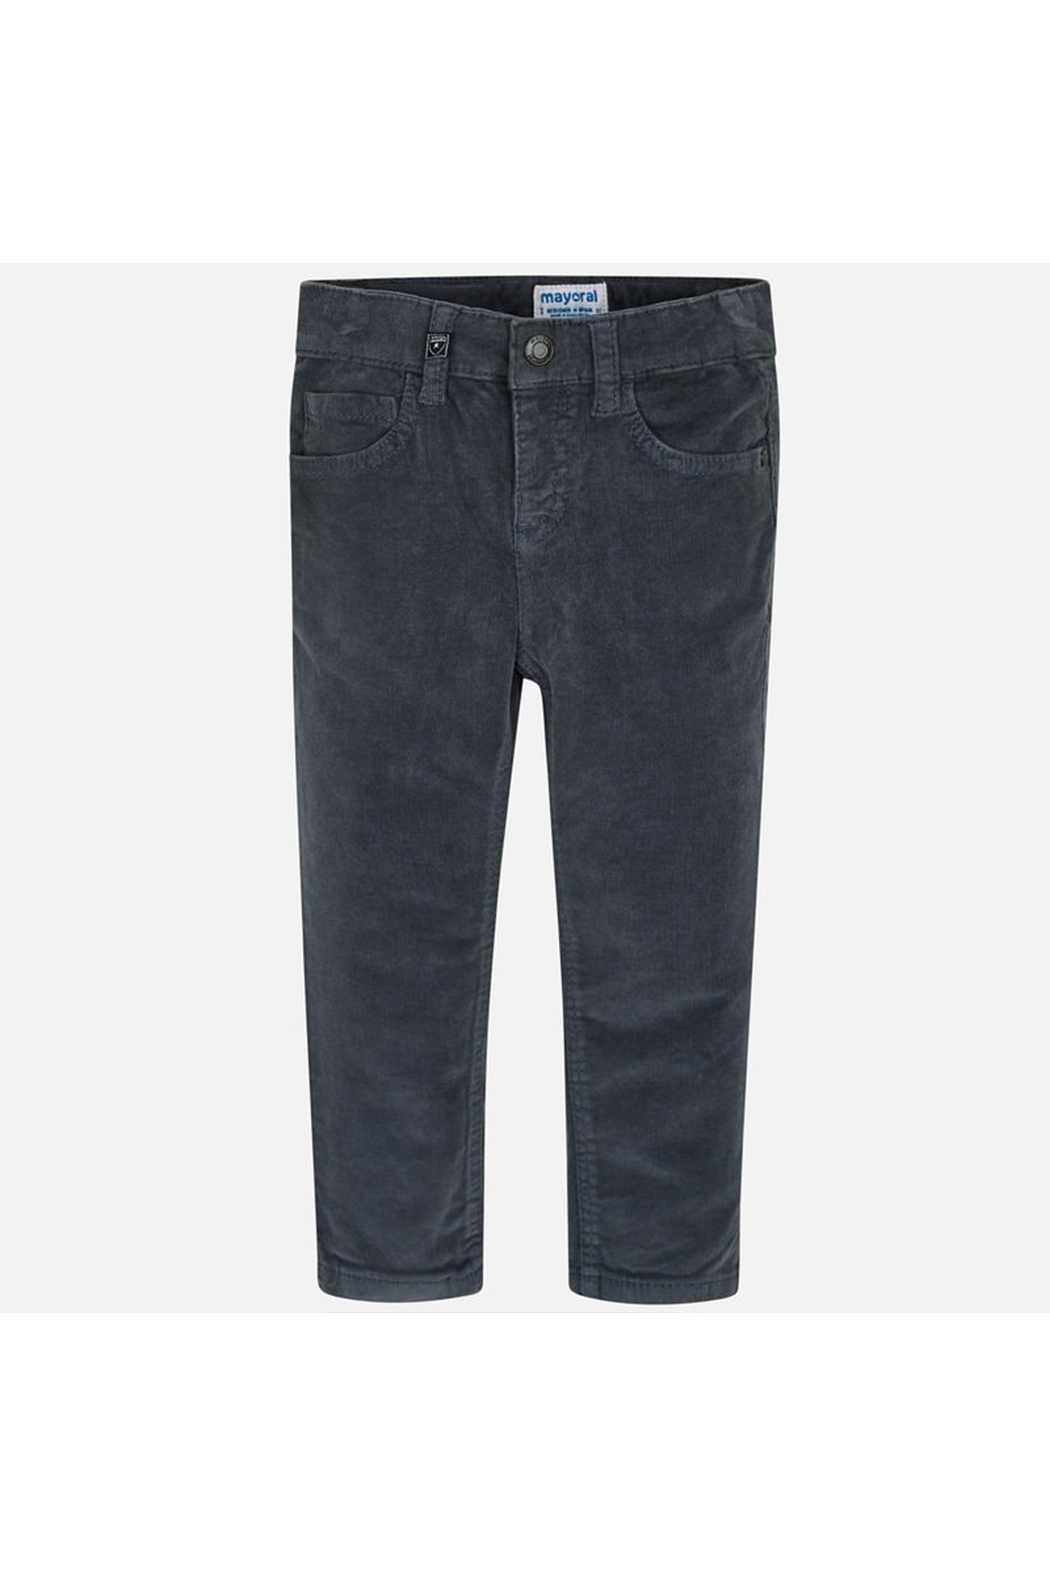 Mayoral Corduroy Pants - Main Image